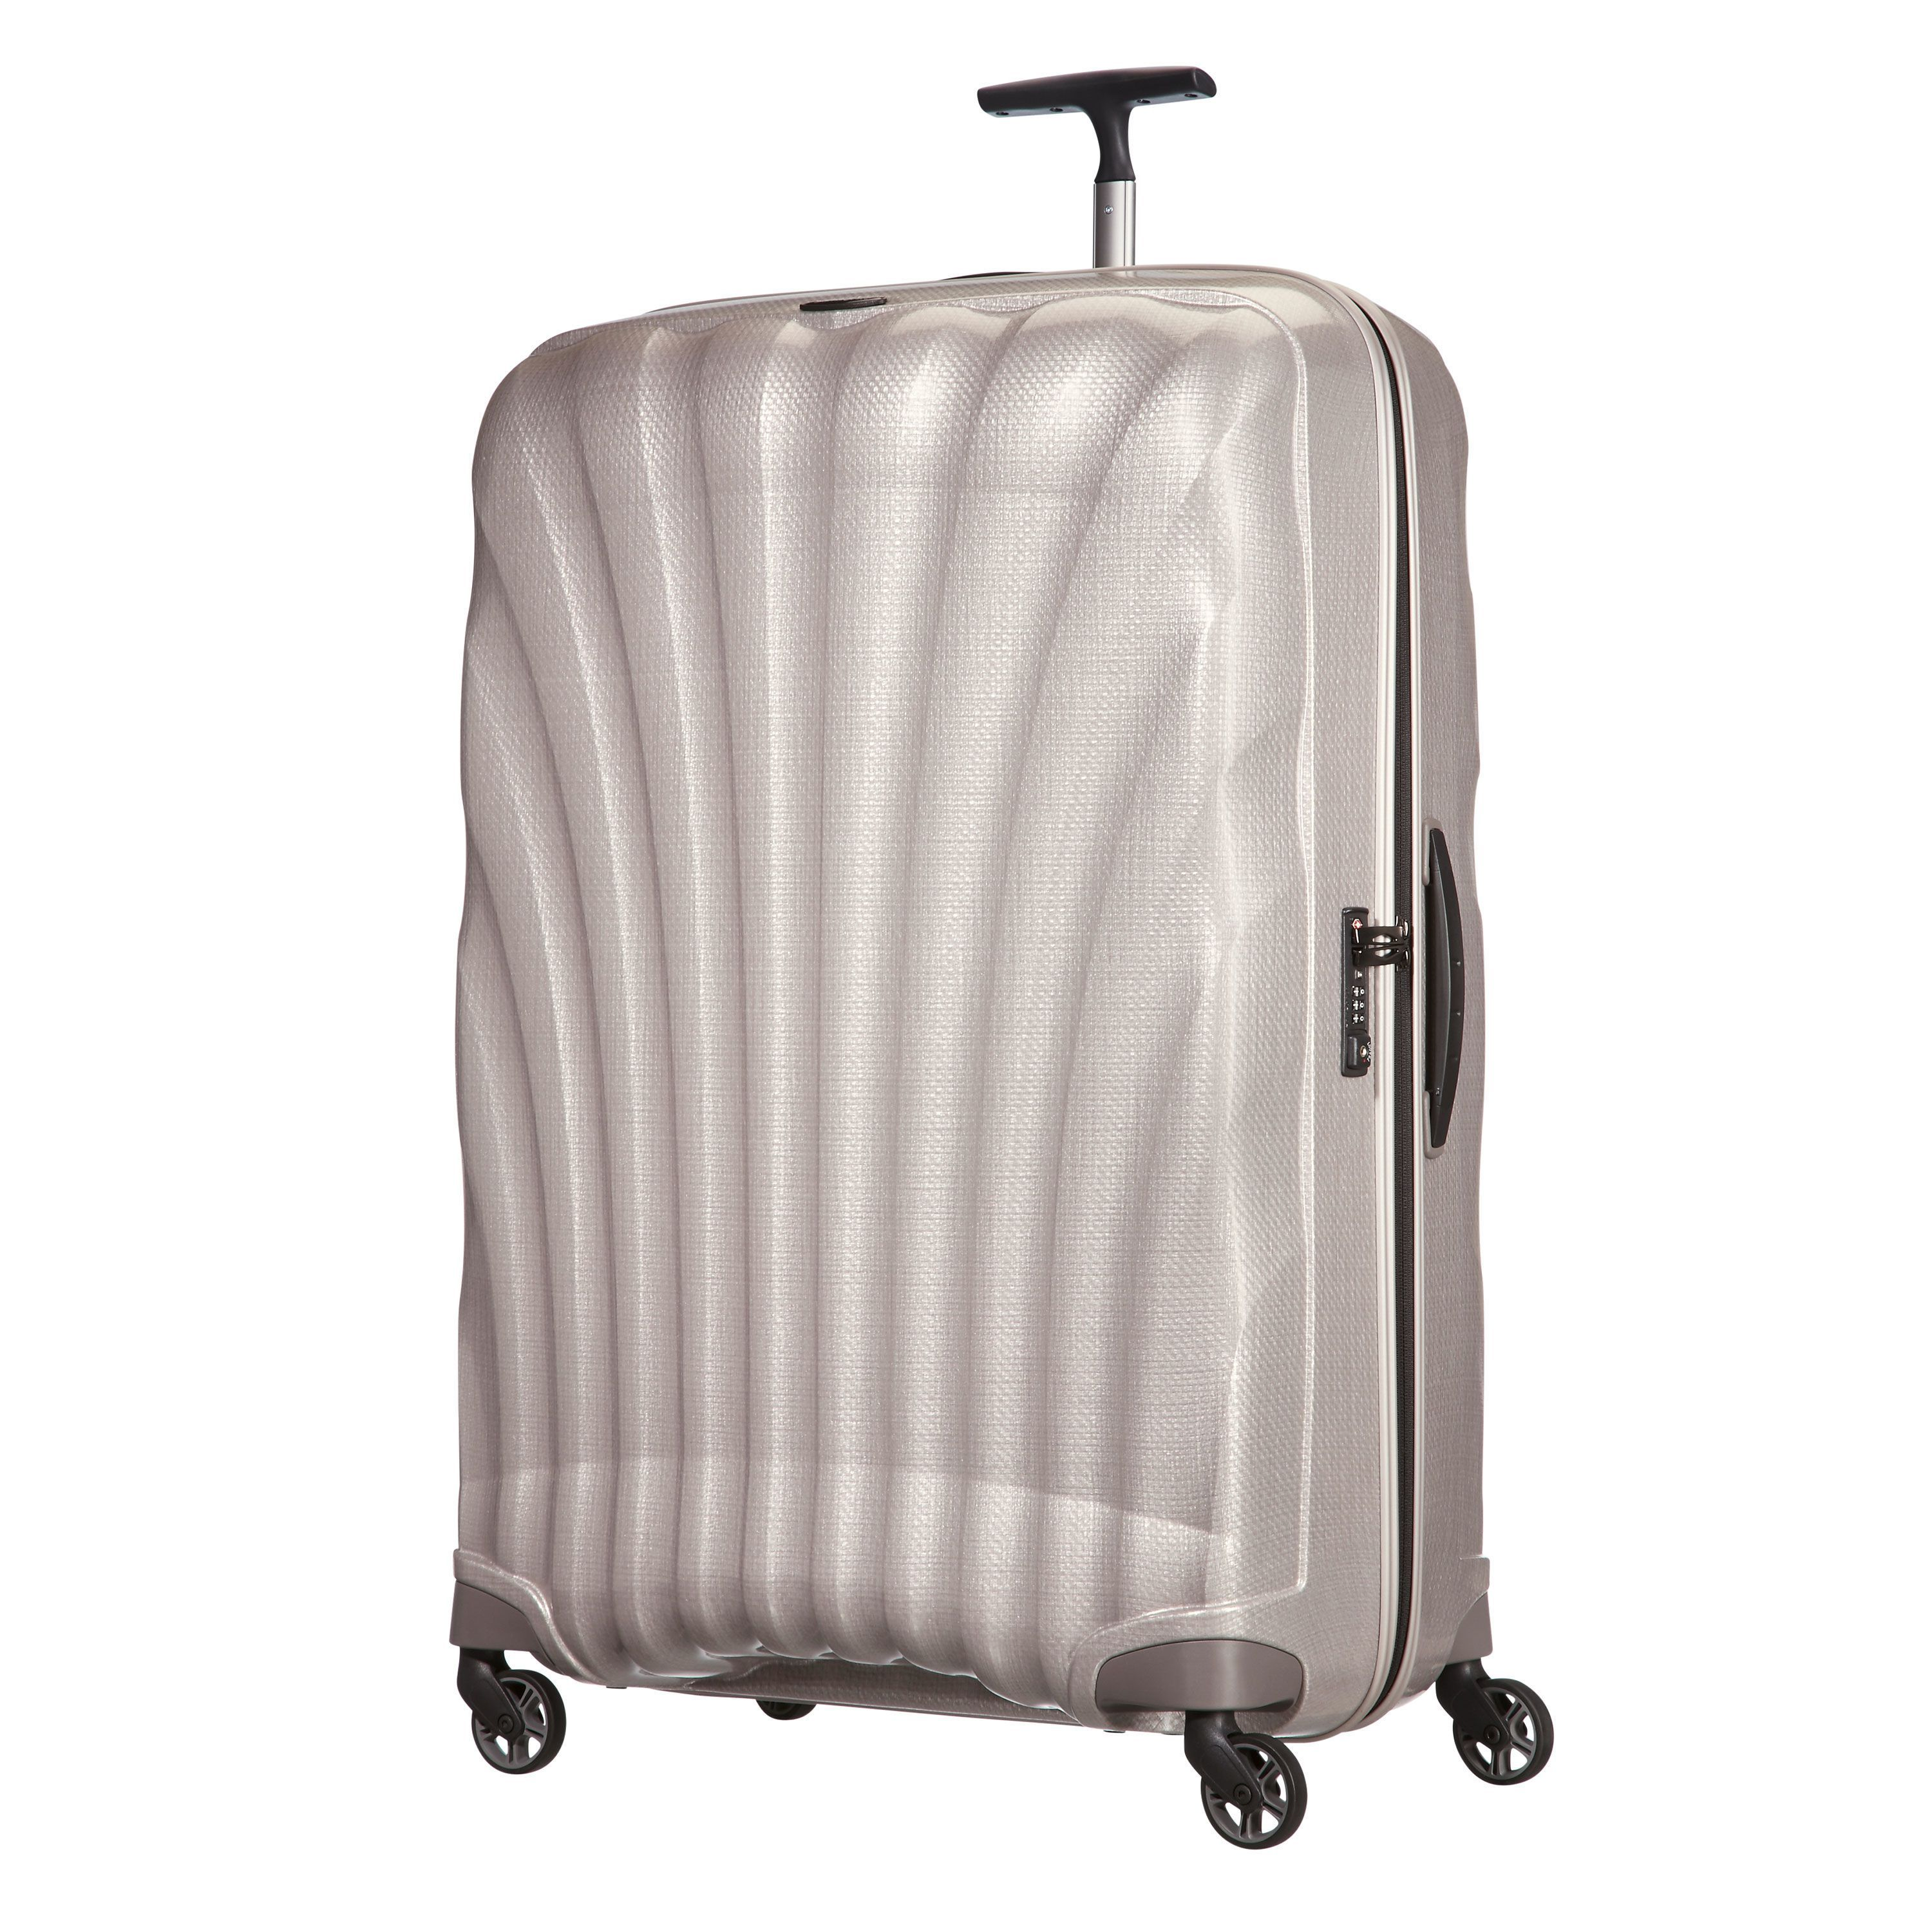 ce46ff5c92b1 Cosmolite 3.0 Spinner 86/33 in 2019 | Products | Samsonite carry on ...